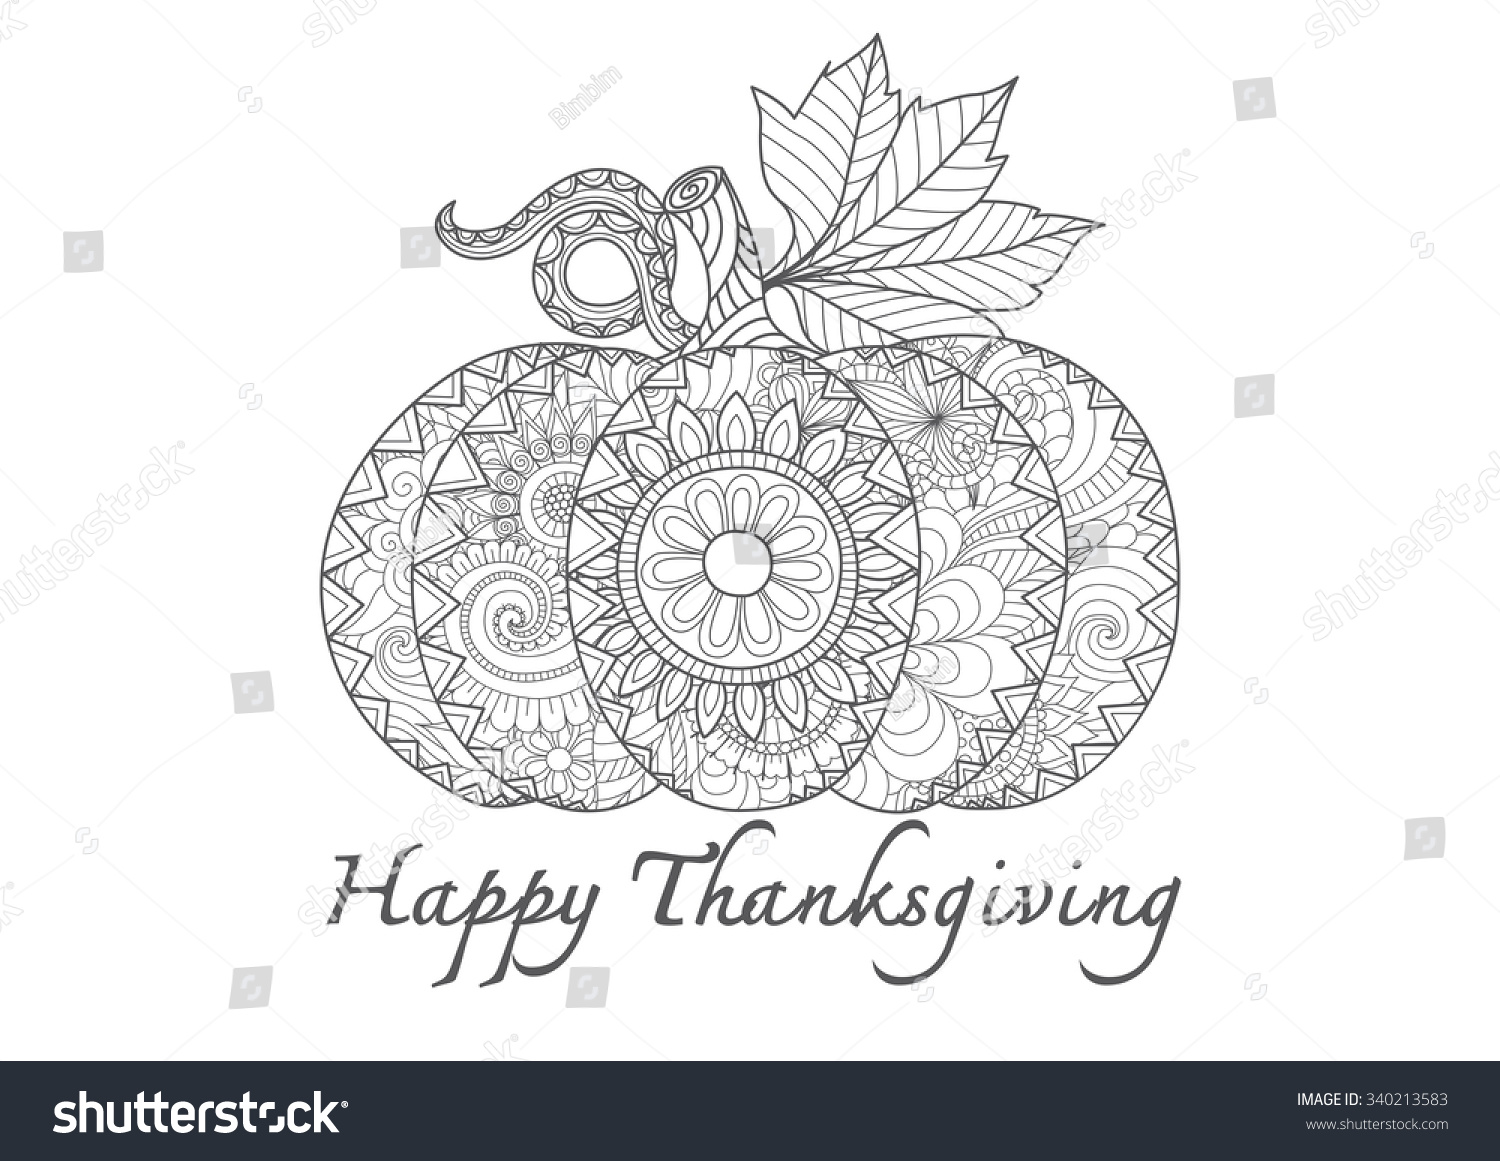 Hand Drawn Sea Thanksgiving Pumpkin Zentangle Style For Coloring Page